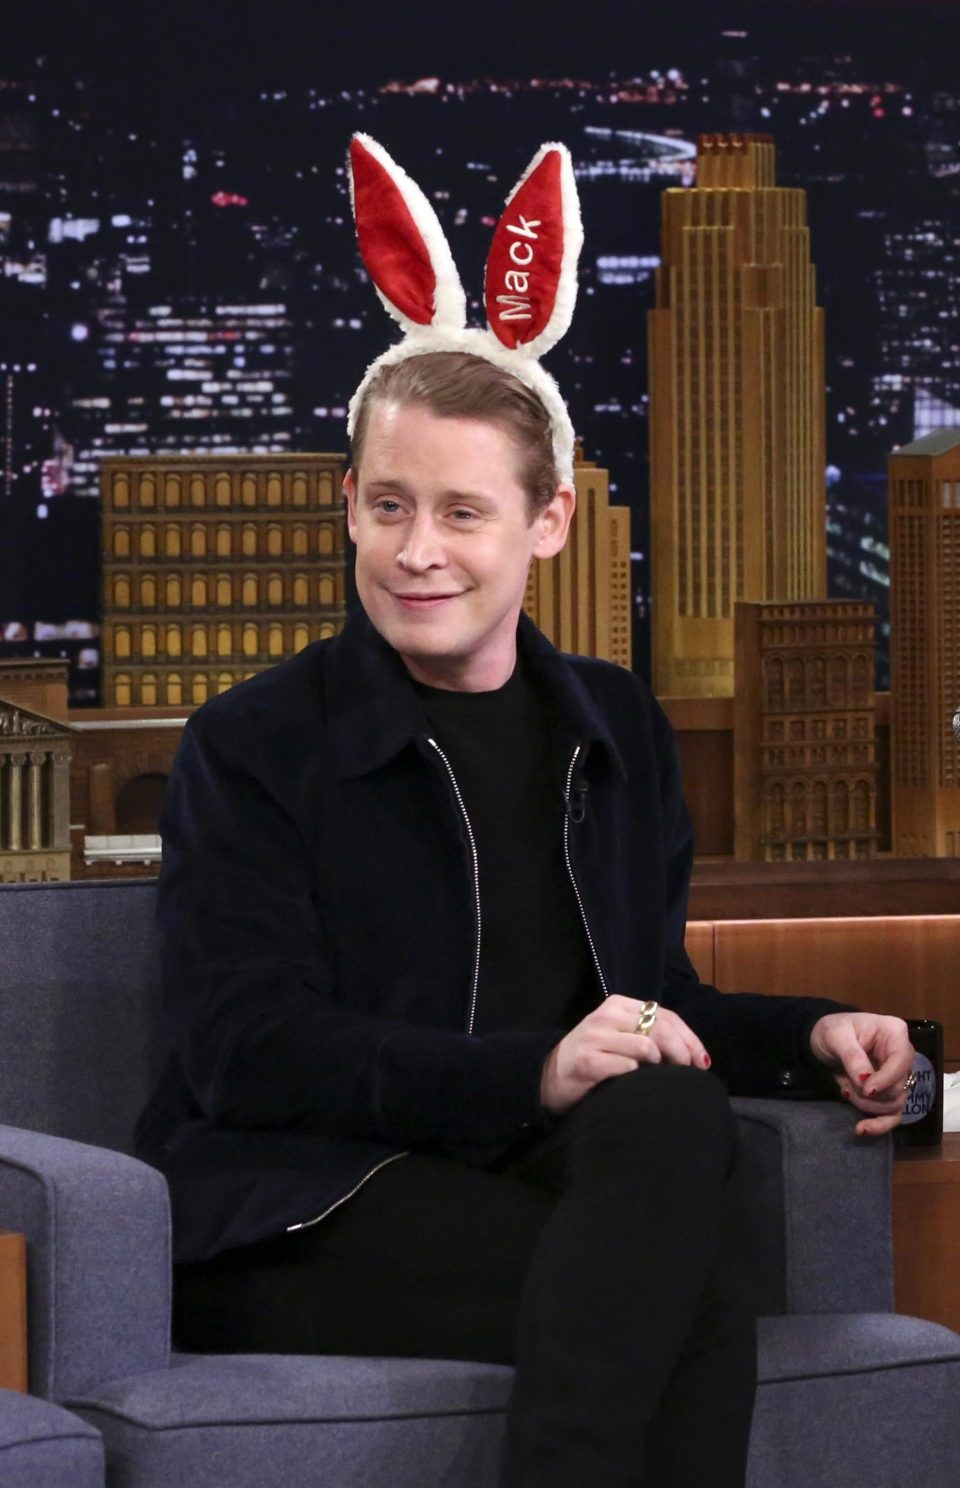 MACAULAY Culkin has admitted he watches Home Alone with his girlfriend and mutters along to all his lines